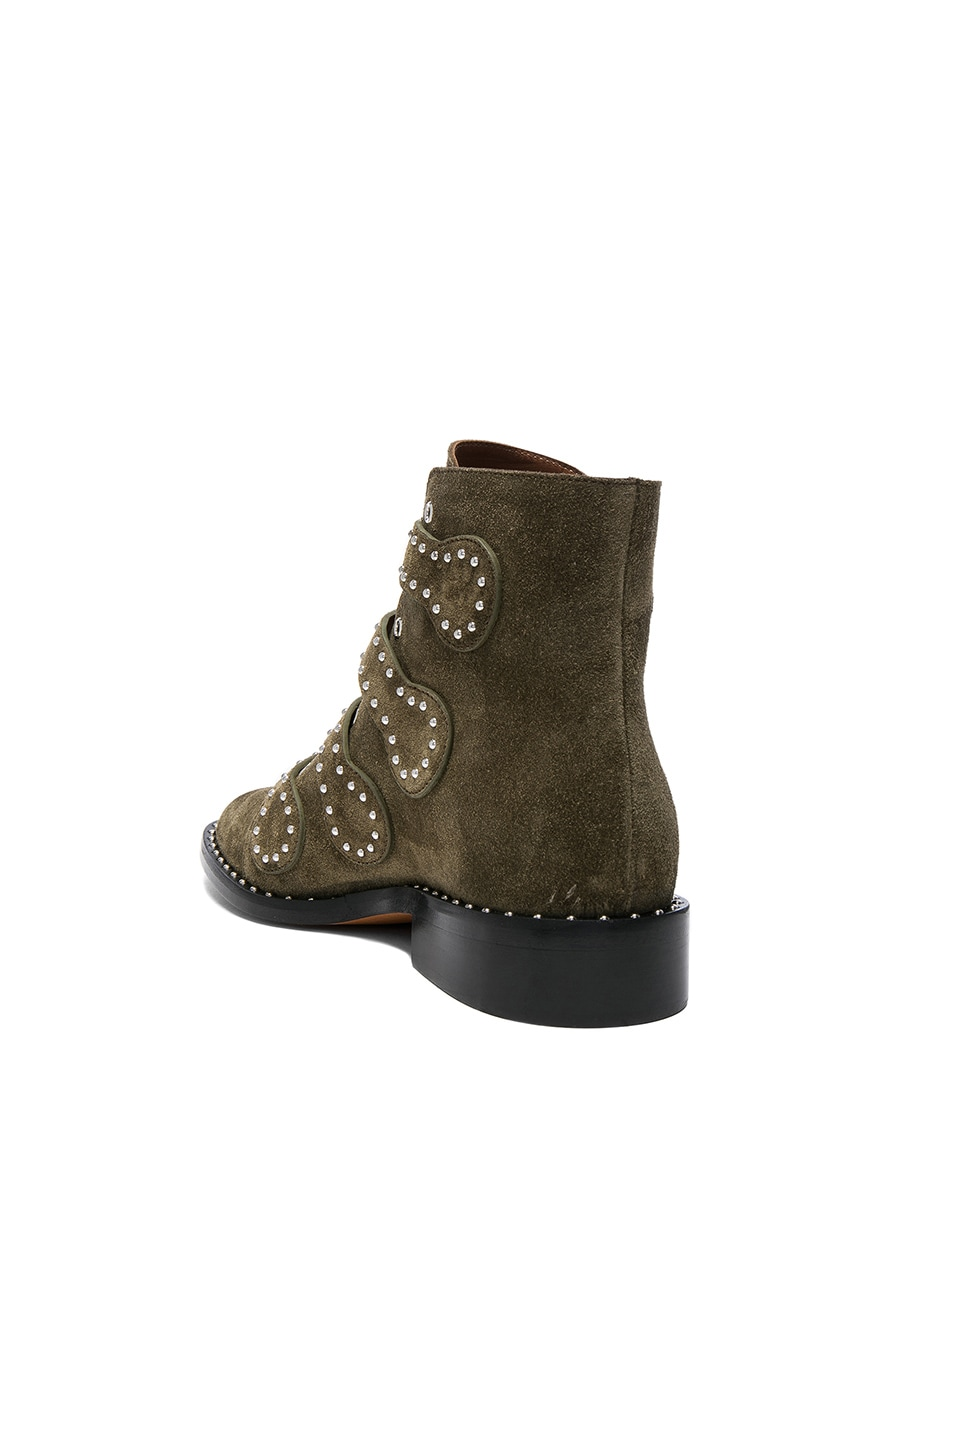 Image 3 of Givenchy Elegant Studded Suede Ankle Boots in Khaki